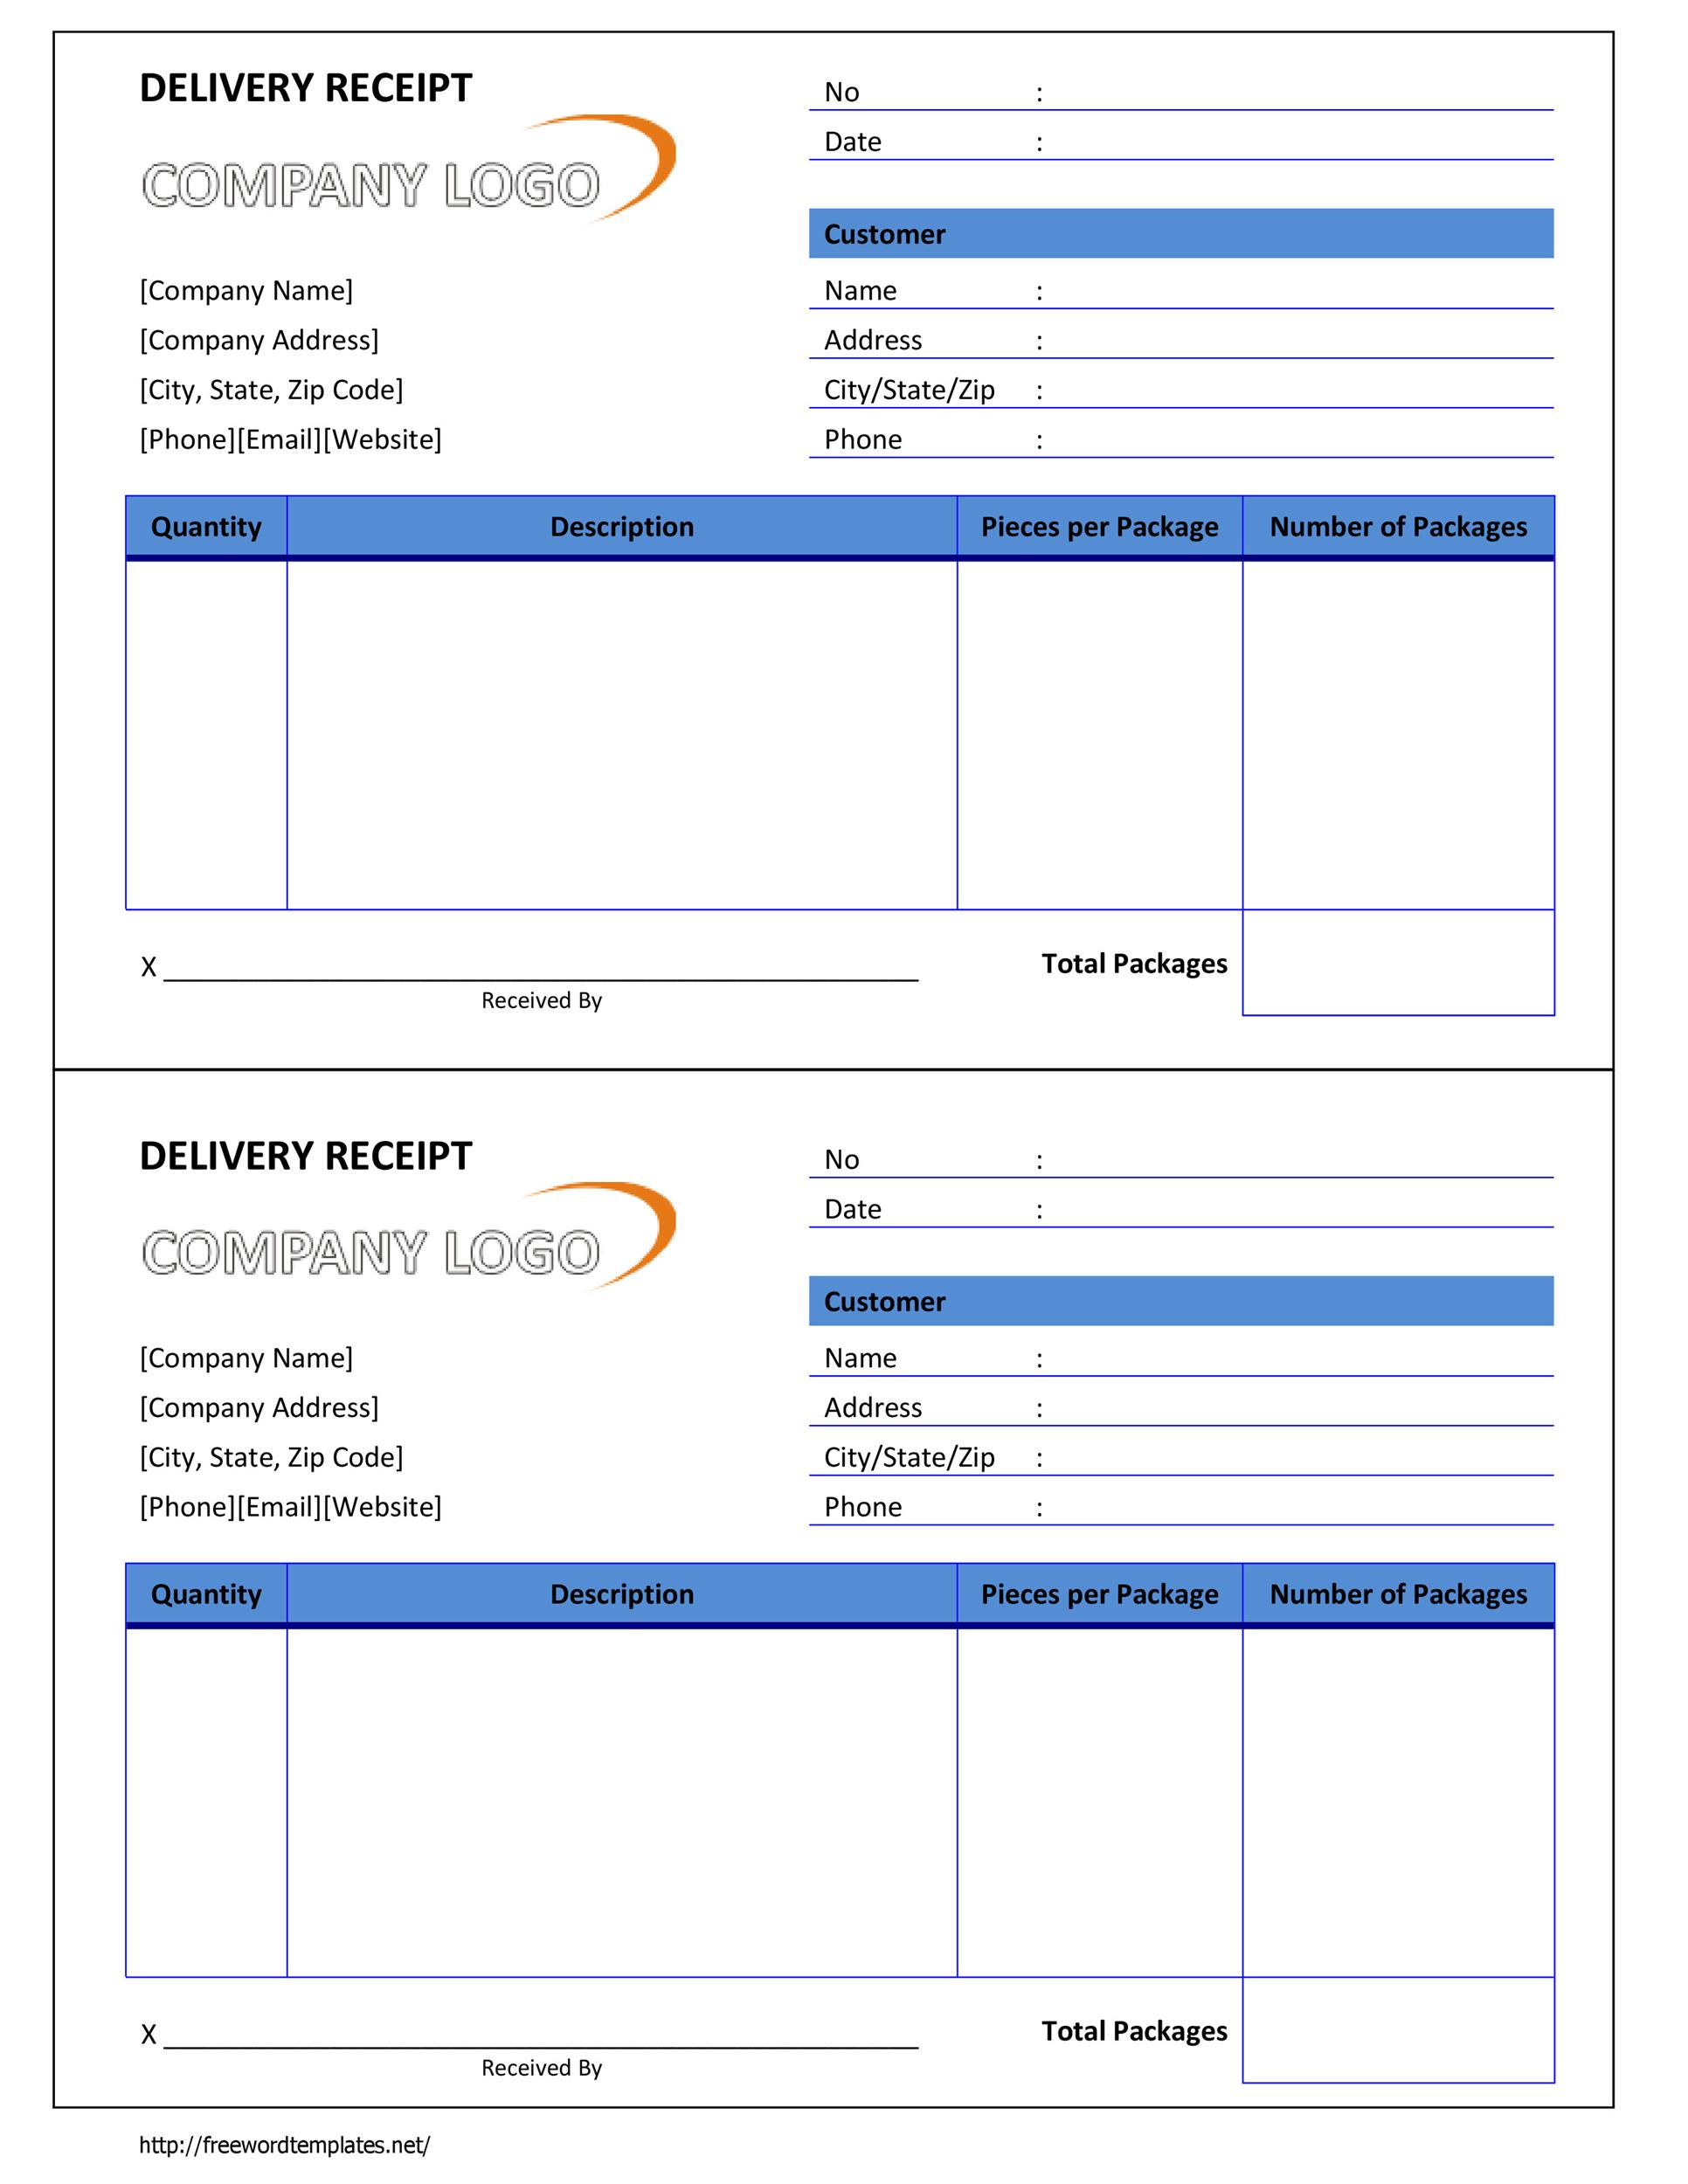 Free Delivery Receipt Template Word